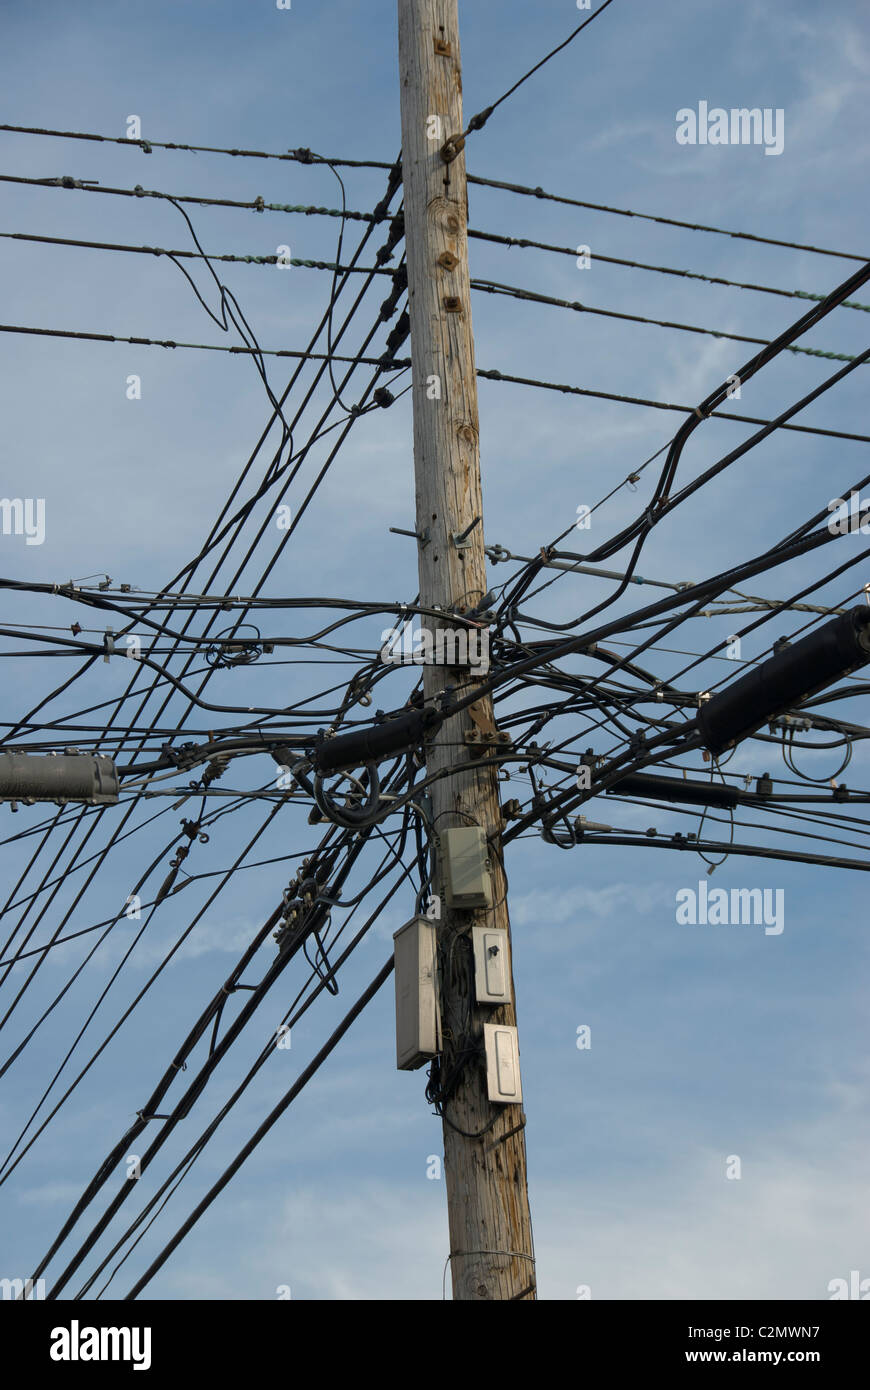 Overhead Power Lines Messy Bundles Of Electrical Cables